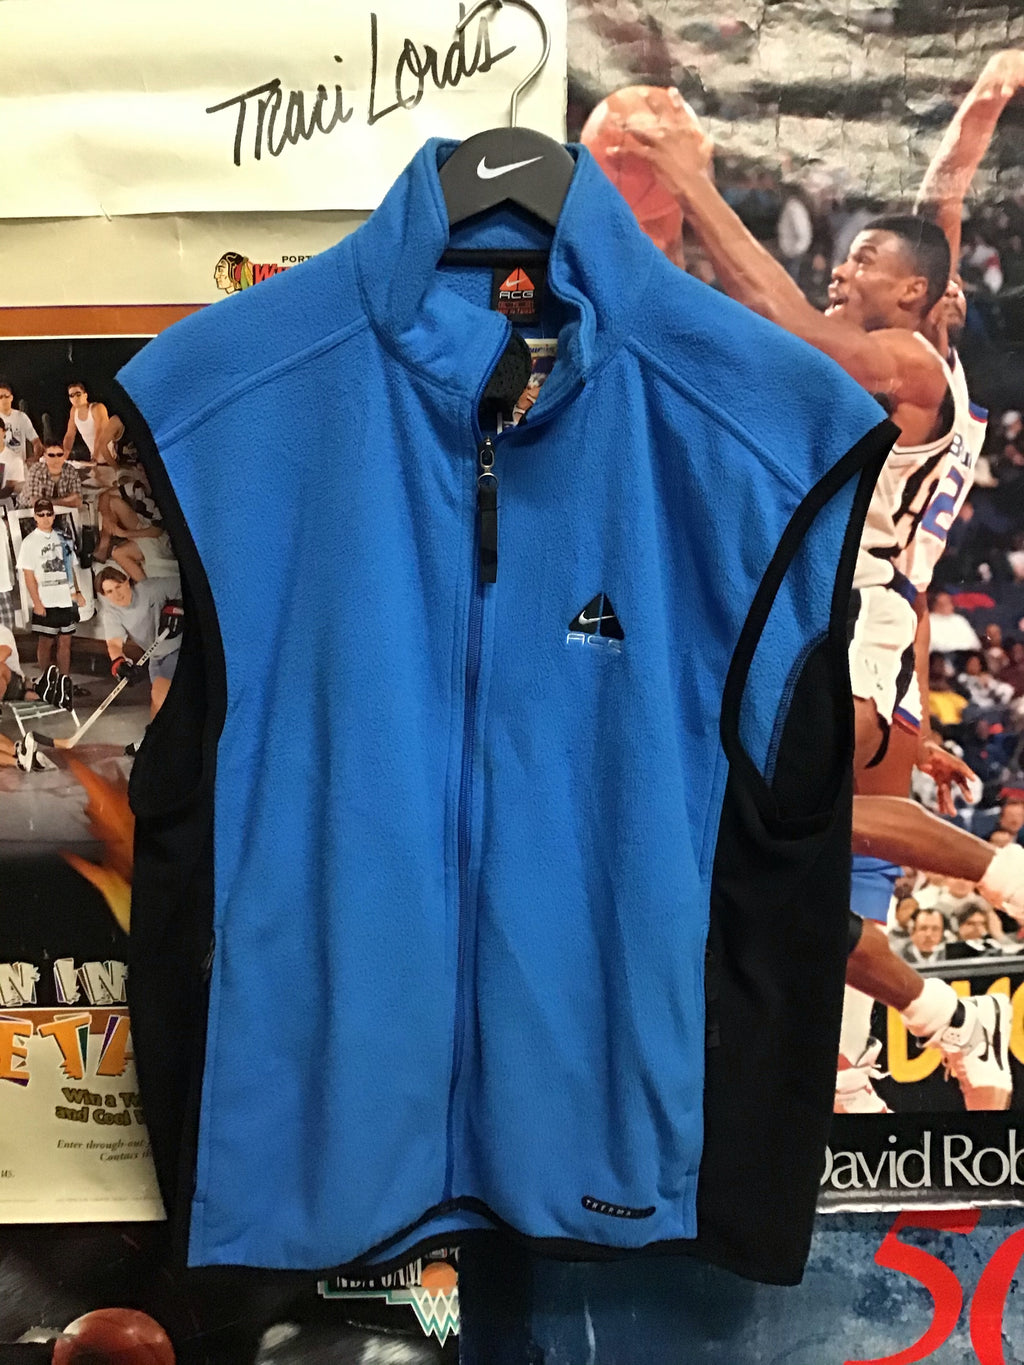 Nike ACG Fleece Vest XL - Decades of dope